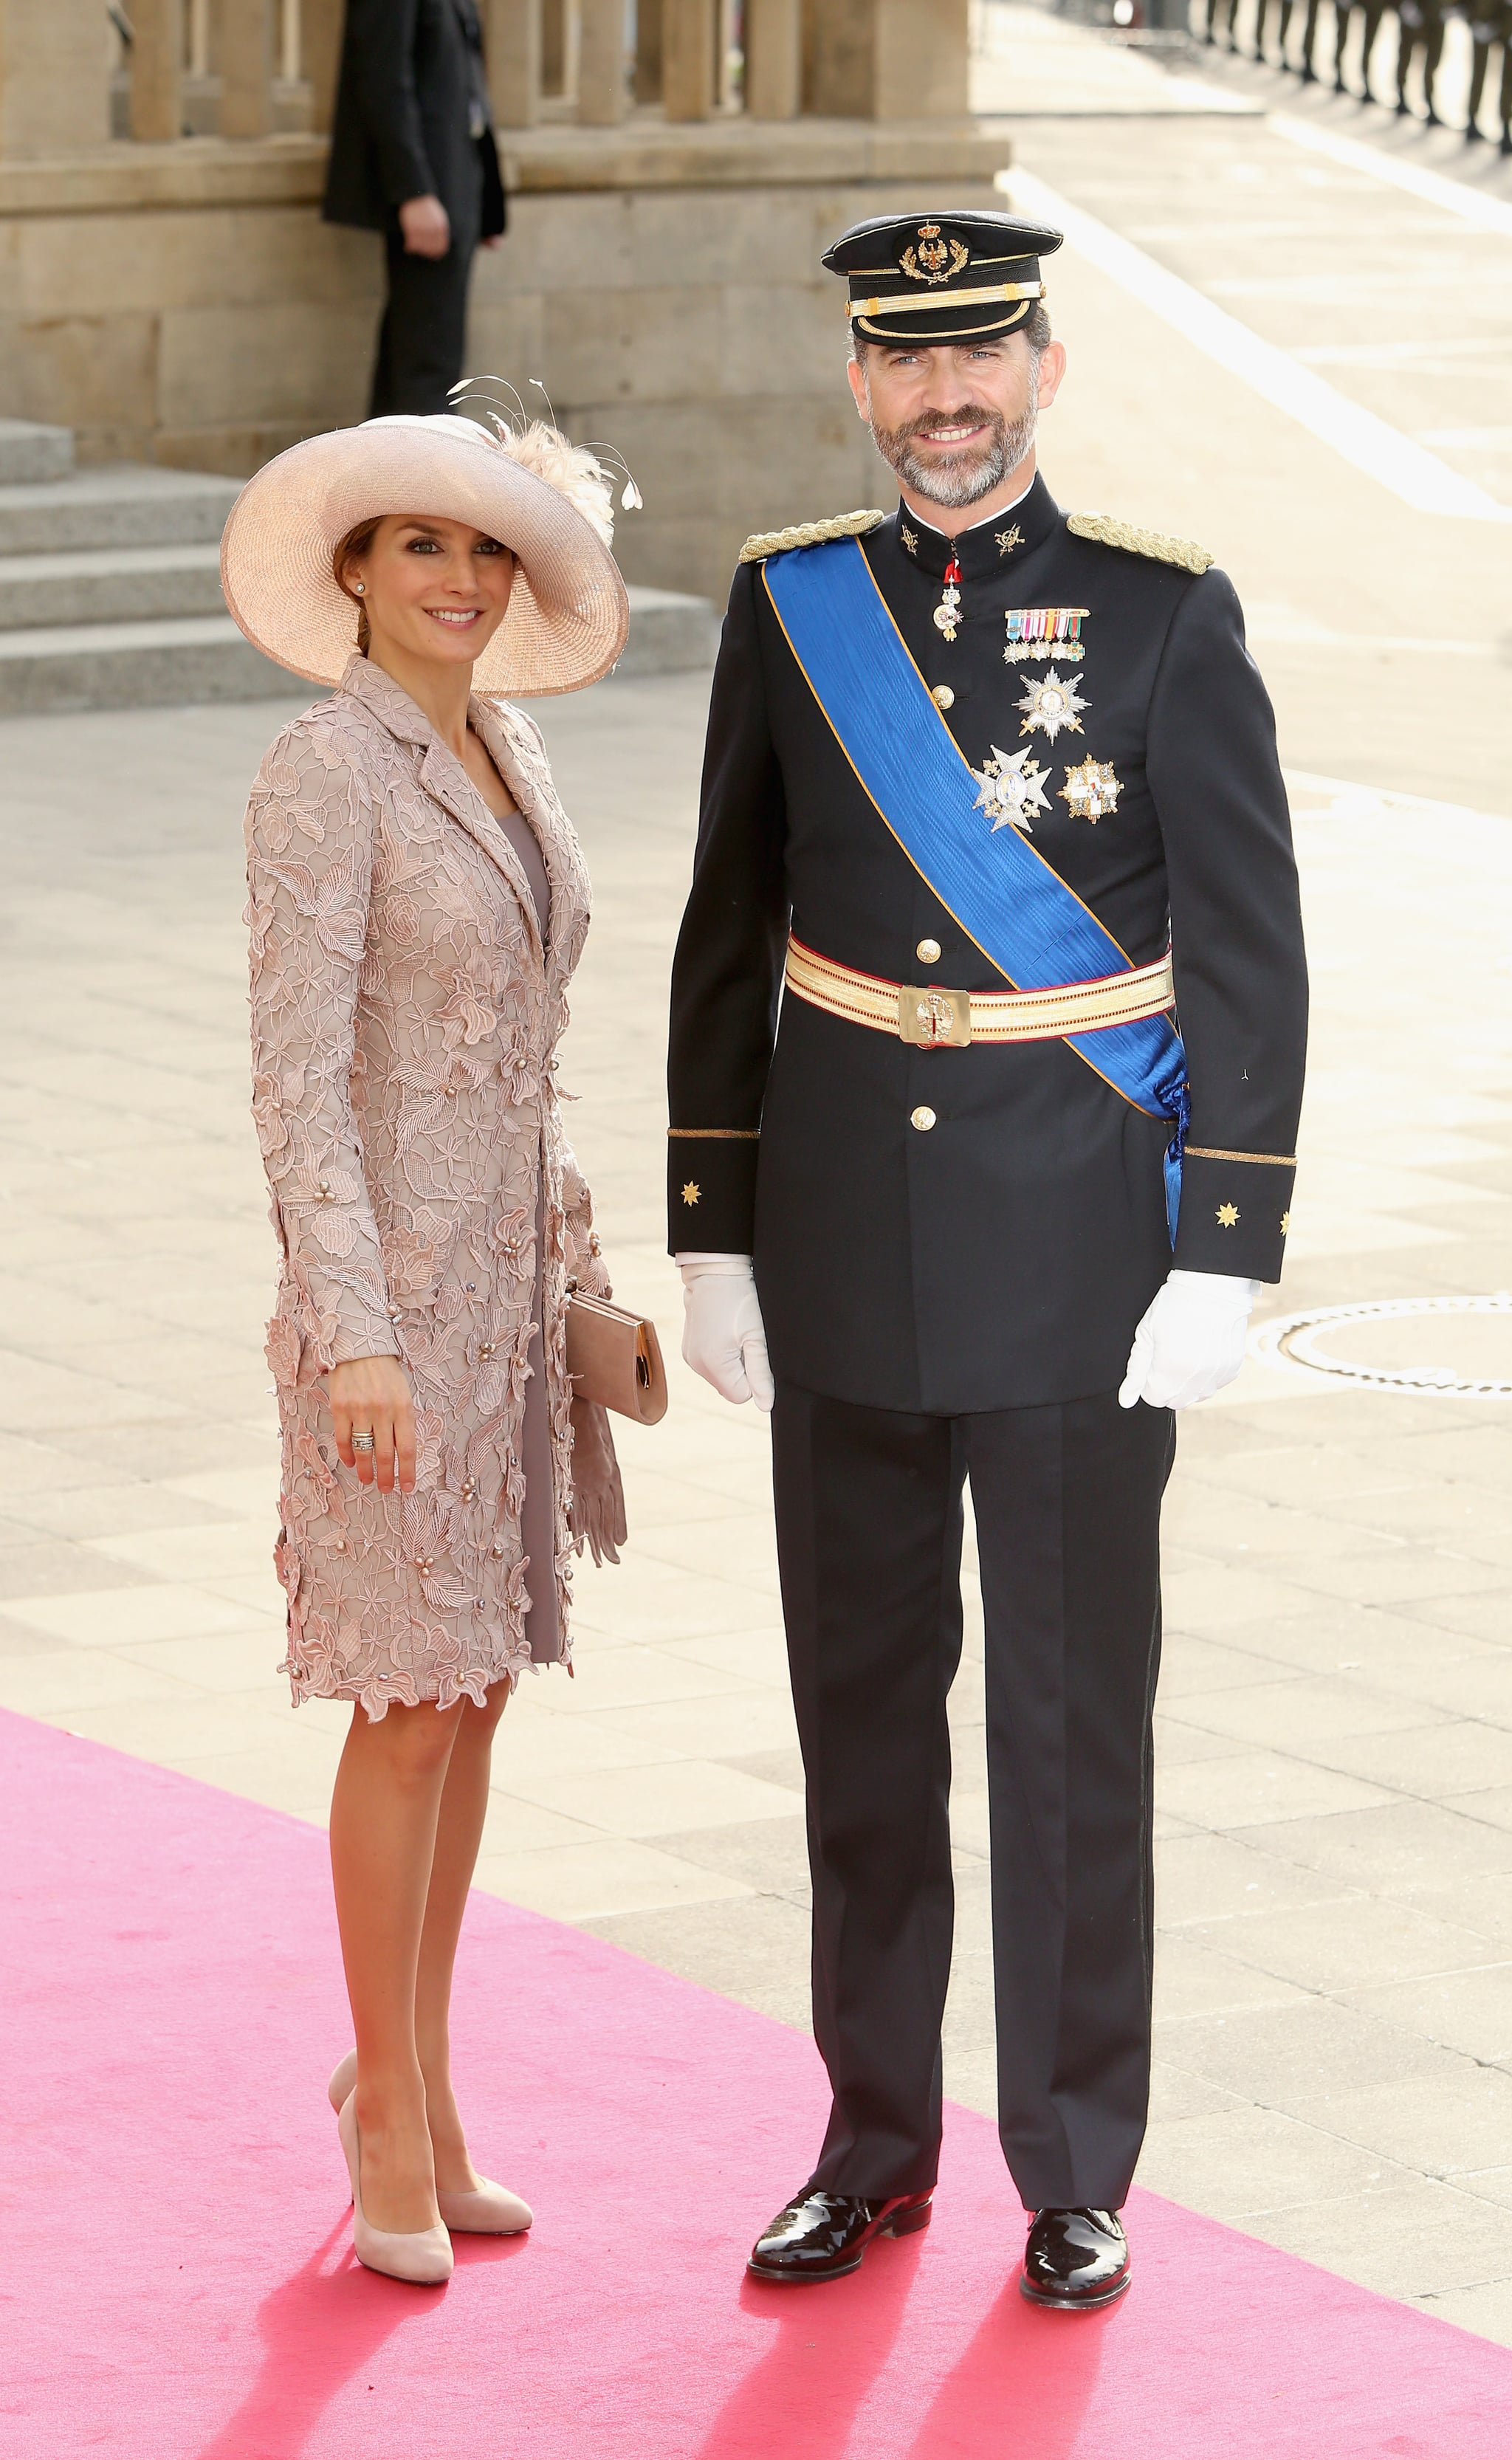 In October 2012, Letizia and Felipe attended the wedding of Princess Stephanie and Prince Guillaume of Luxembourg.